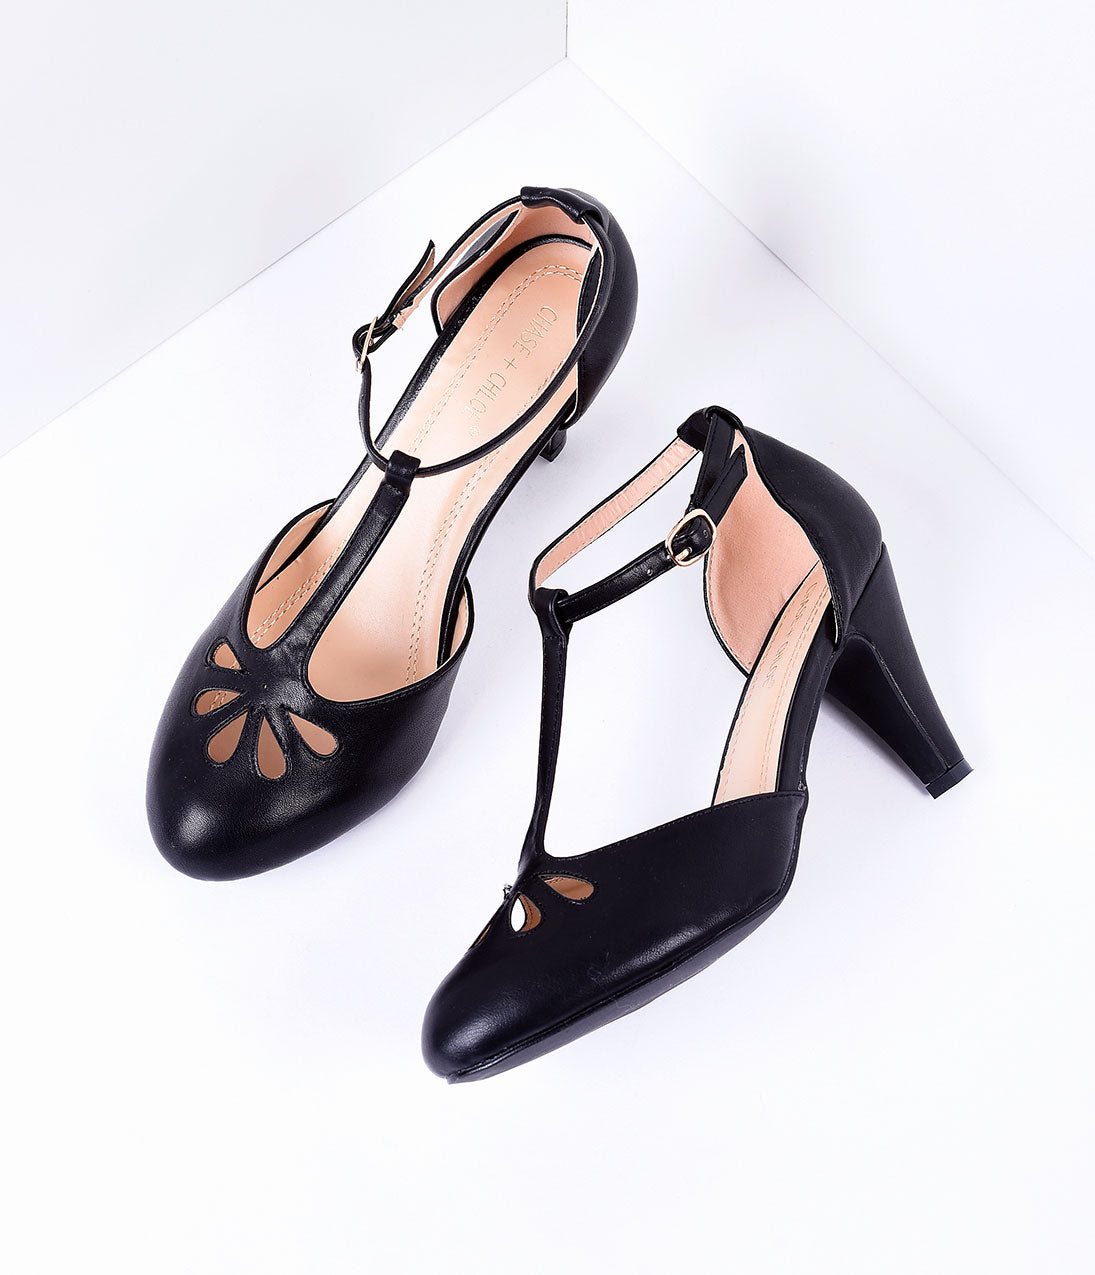 1950s Style Shoes | Heels, Flats, Saddle Shoes Black Pleather Cutout Kimmy T-Strap Heels $44.00 AT vintagedancer.com